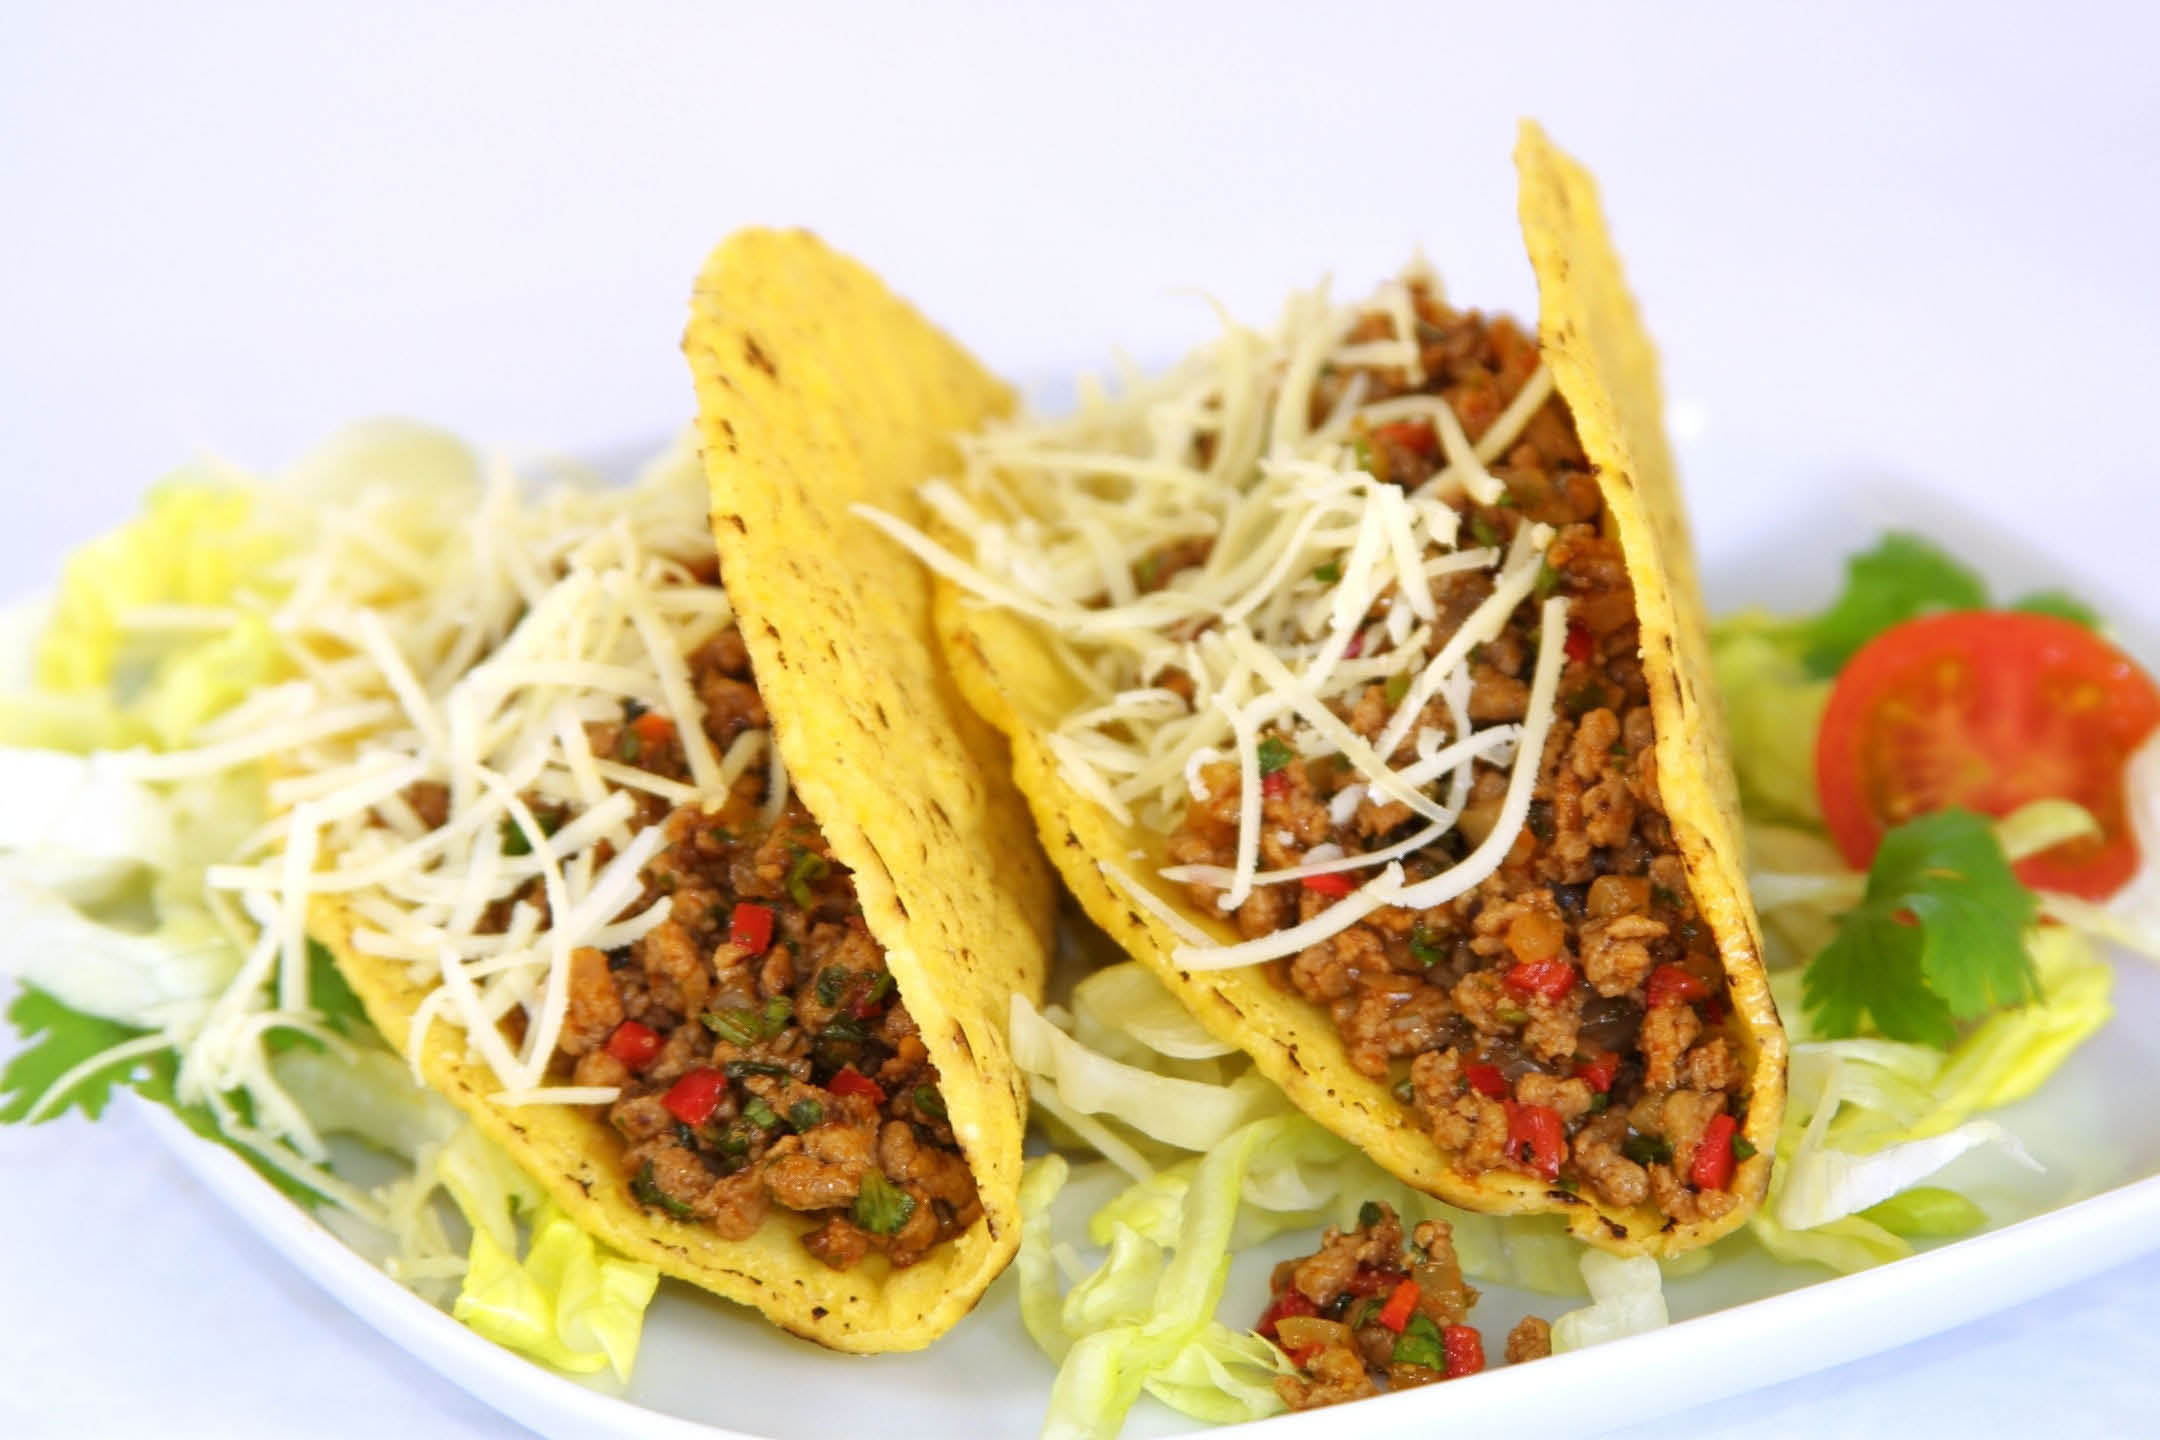 Tantalizingly-tempting tacos for your next Mex meal